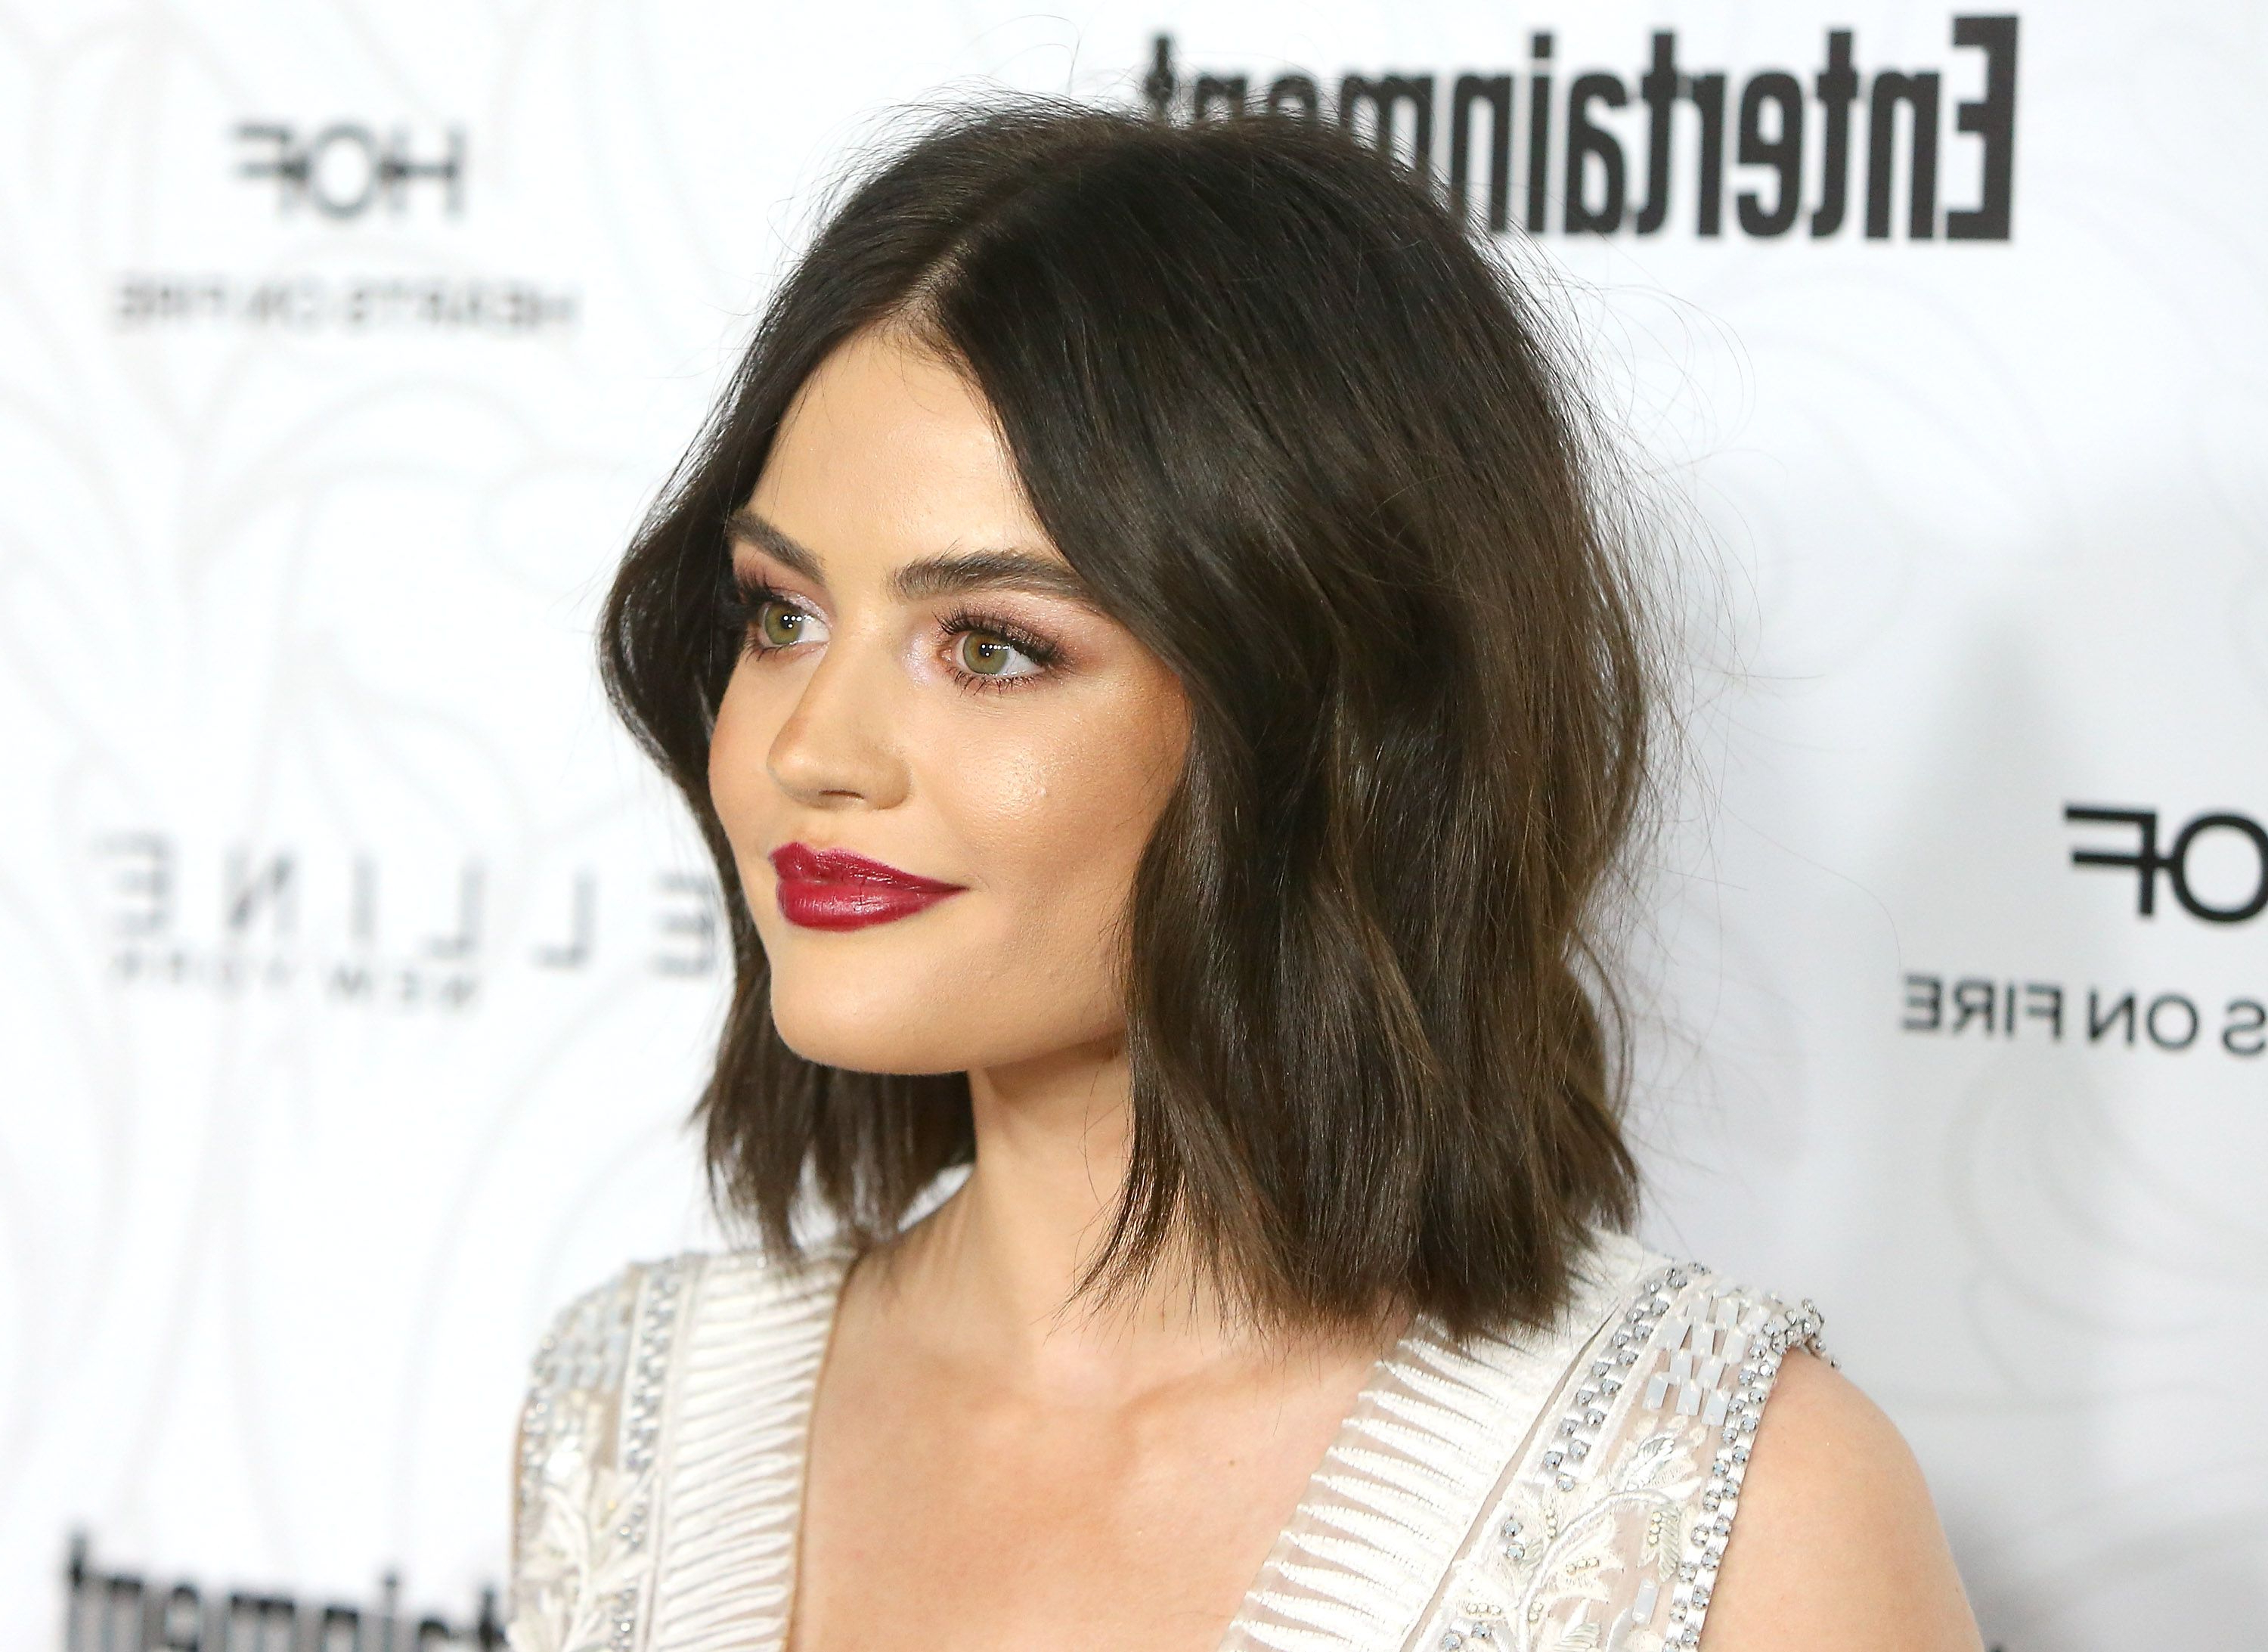 Bob Hairstyles For 2019 – 53 Short Haircut Trends To Try Now Throughout Current Perfect Layered Blonde Bob Hairstyles With Bangs (View 12 of 20)